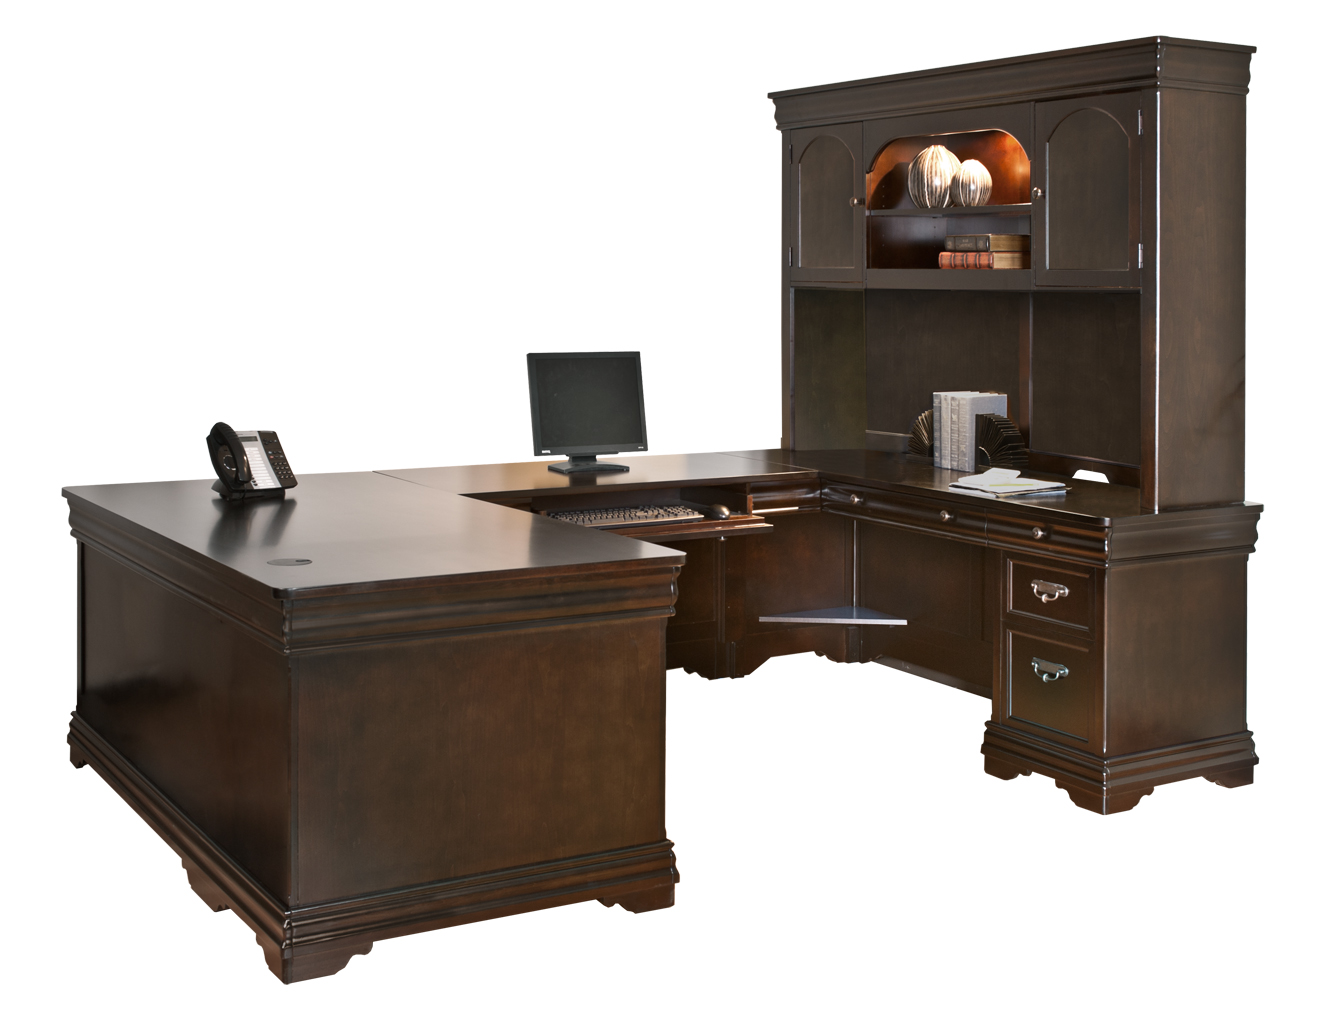 Beaumont U Shaped Office Desk Full View 1